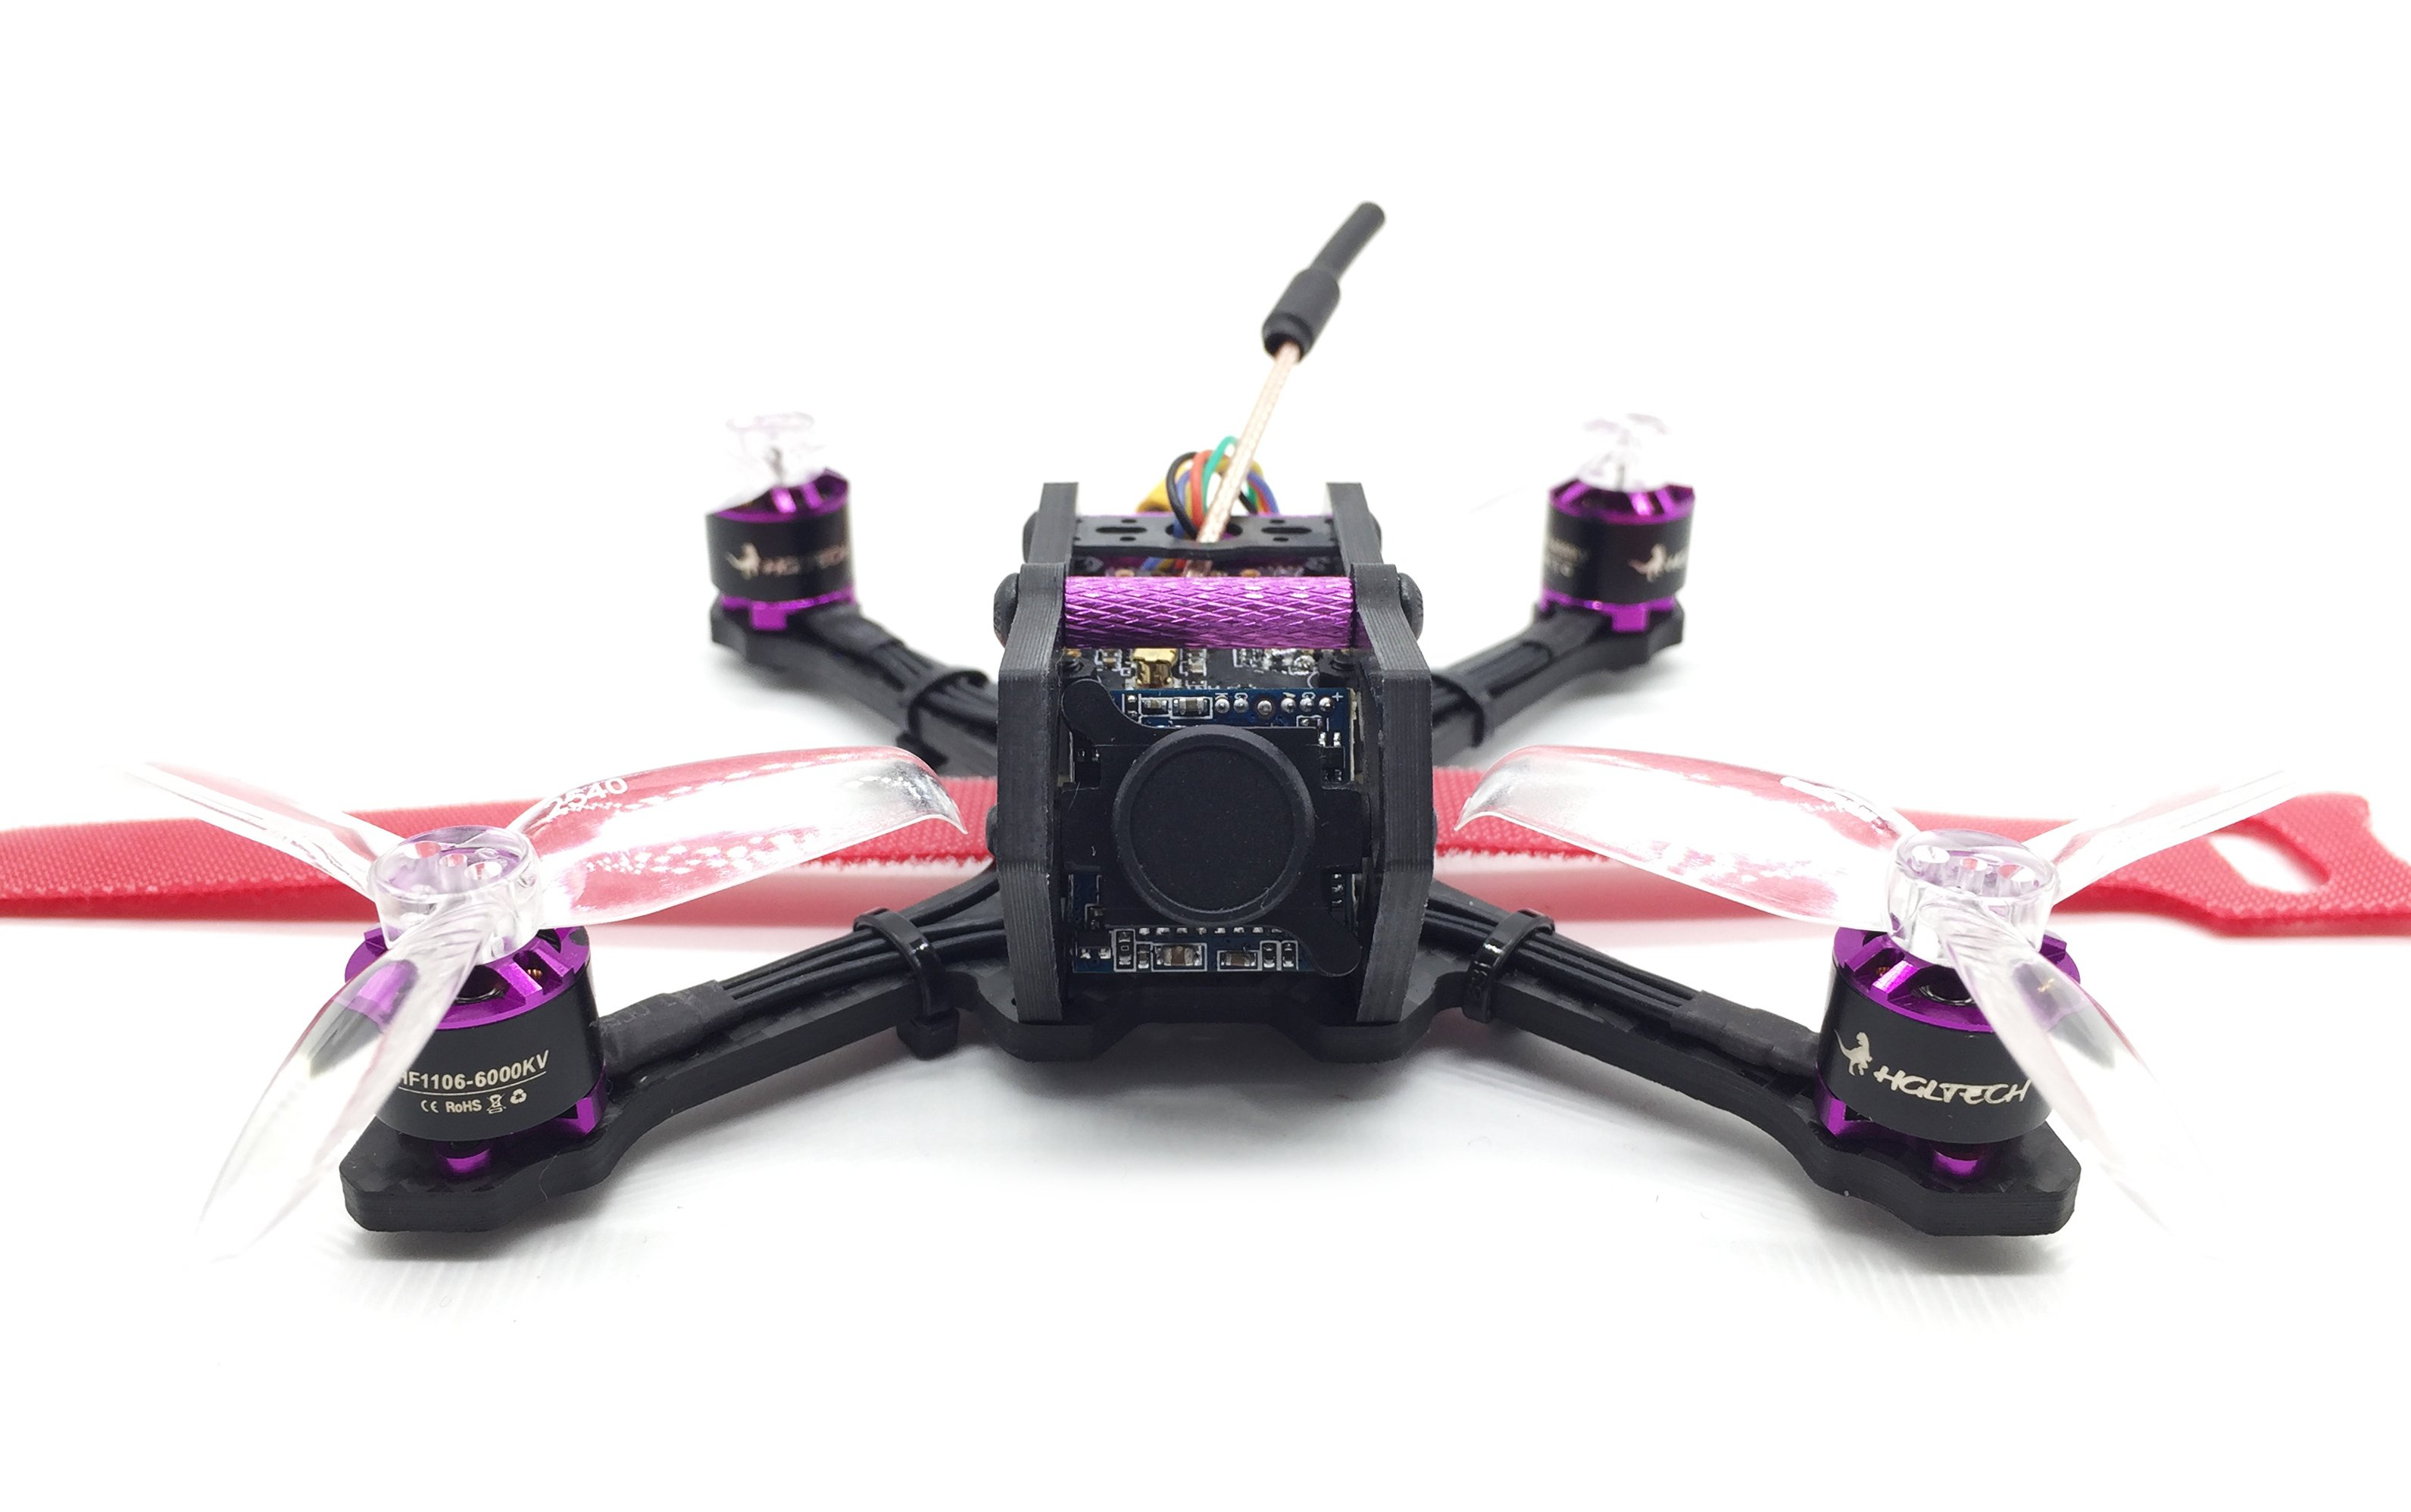 HGLRC HORNET 120mm PNP FPV Racing Drone